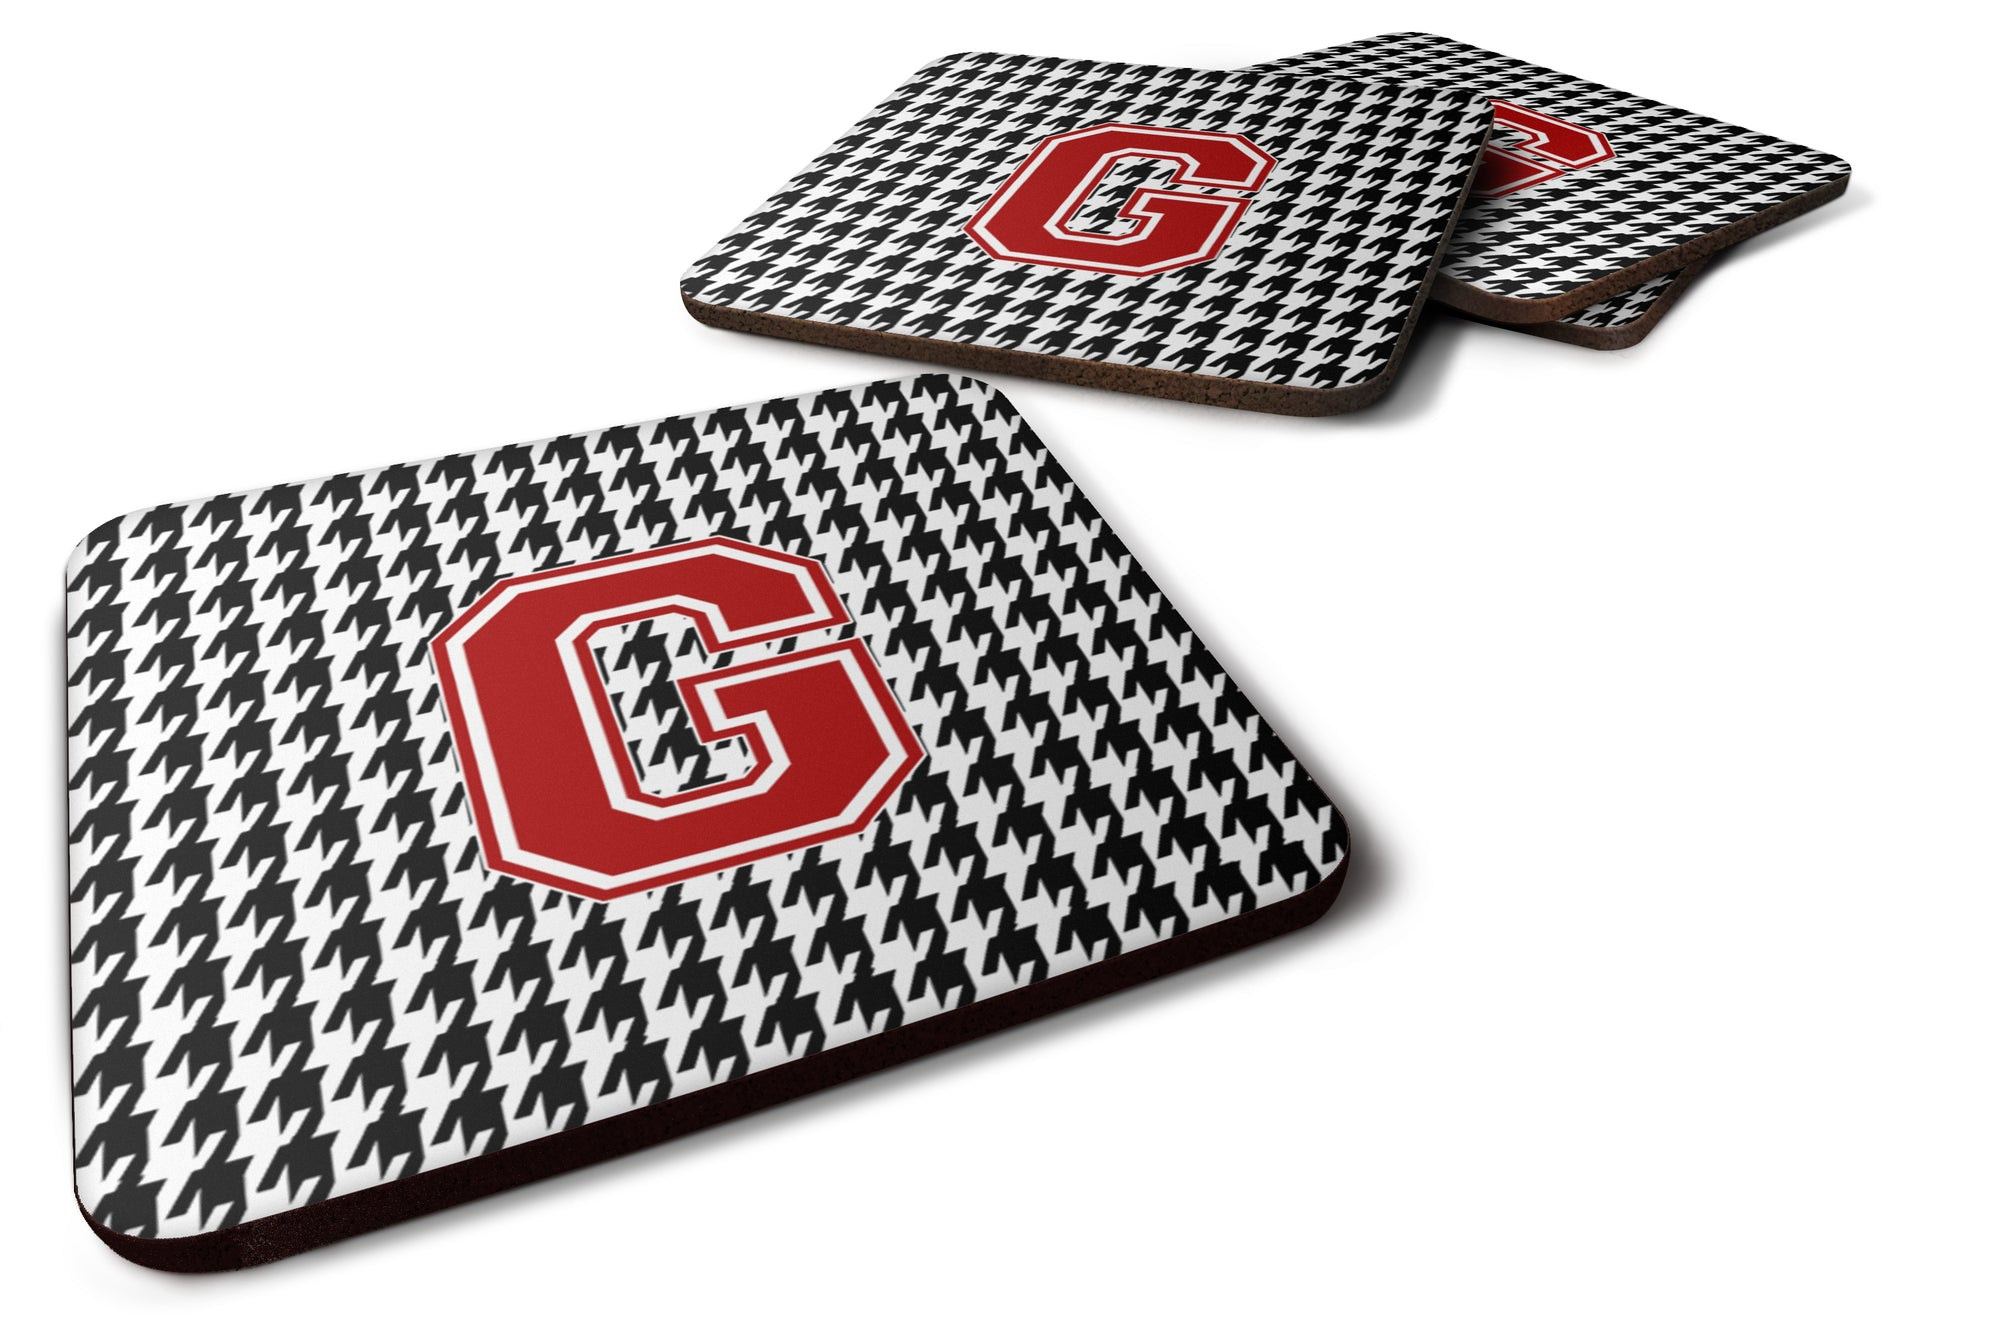 Buy this Set of 4 Monogram - Houndstooth Foam Coasters Initial G